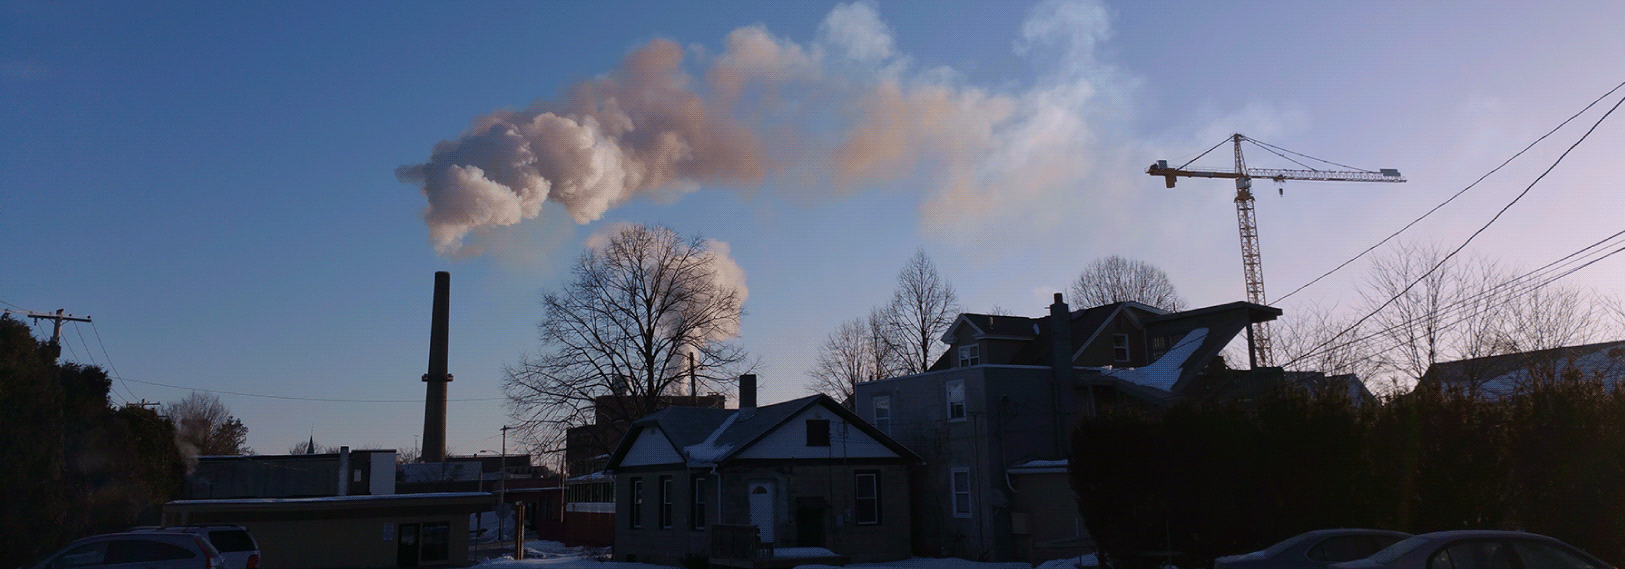 Smoke rises from a smokestack into a clear, blue morning sky